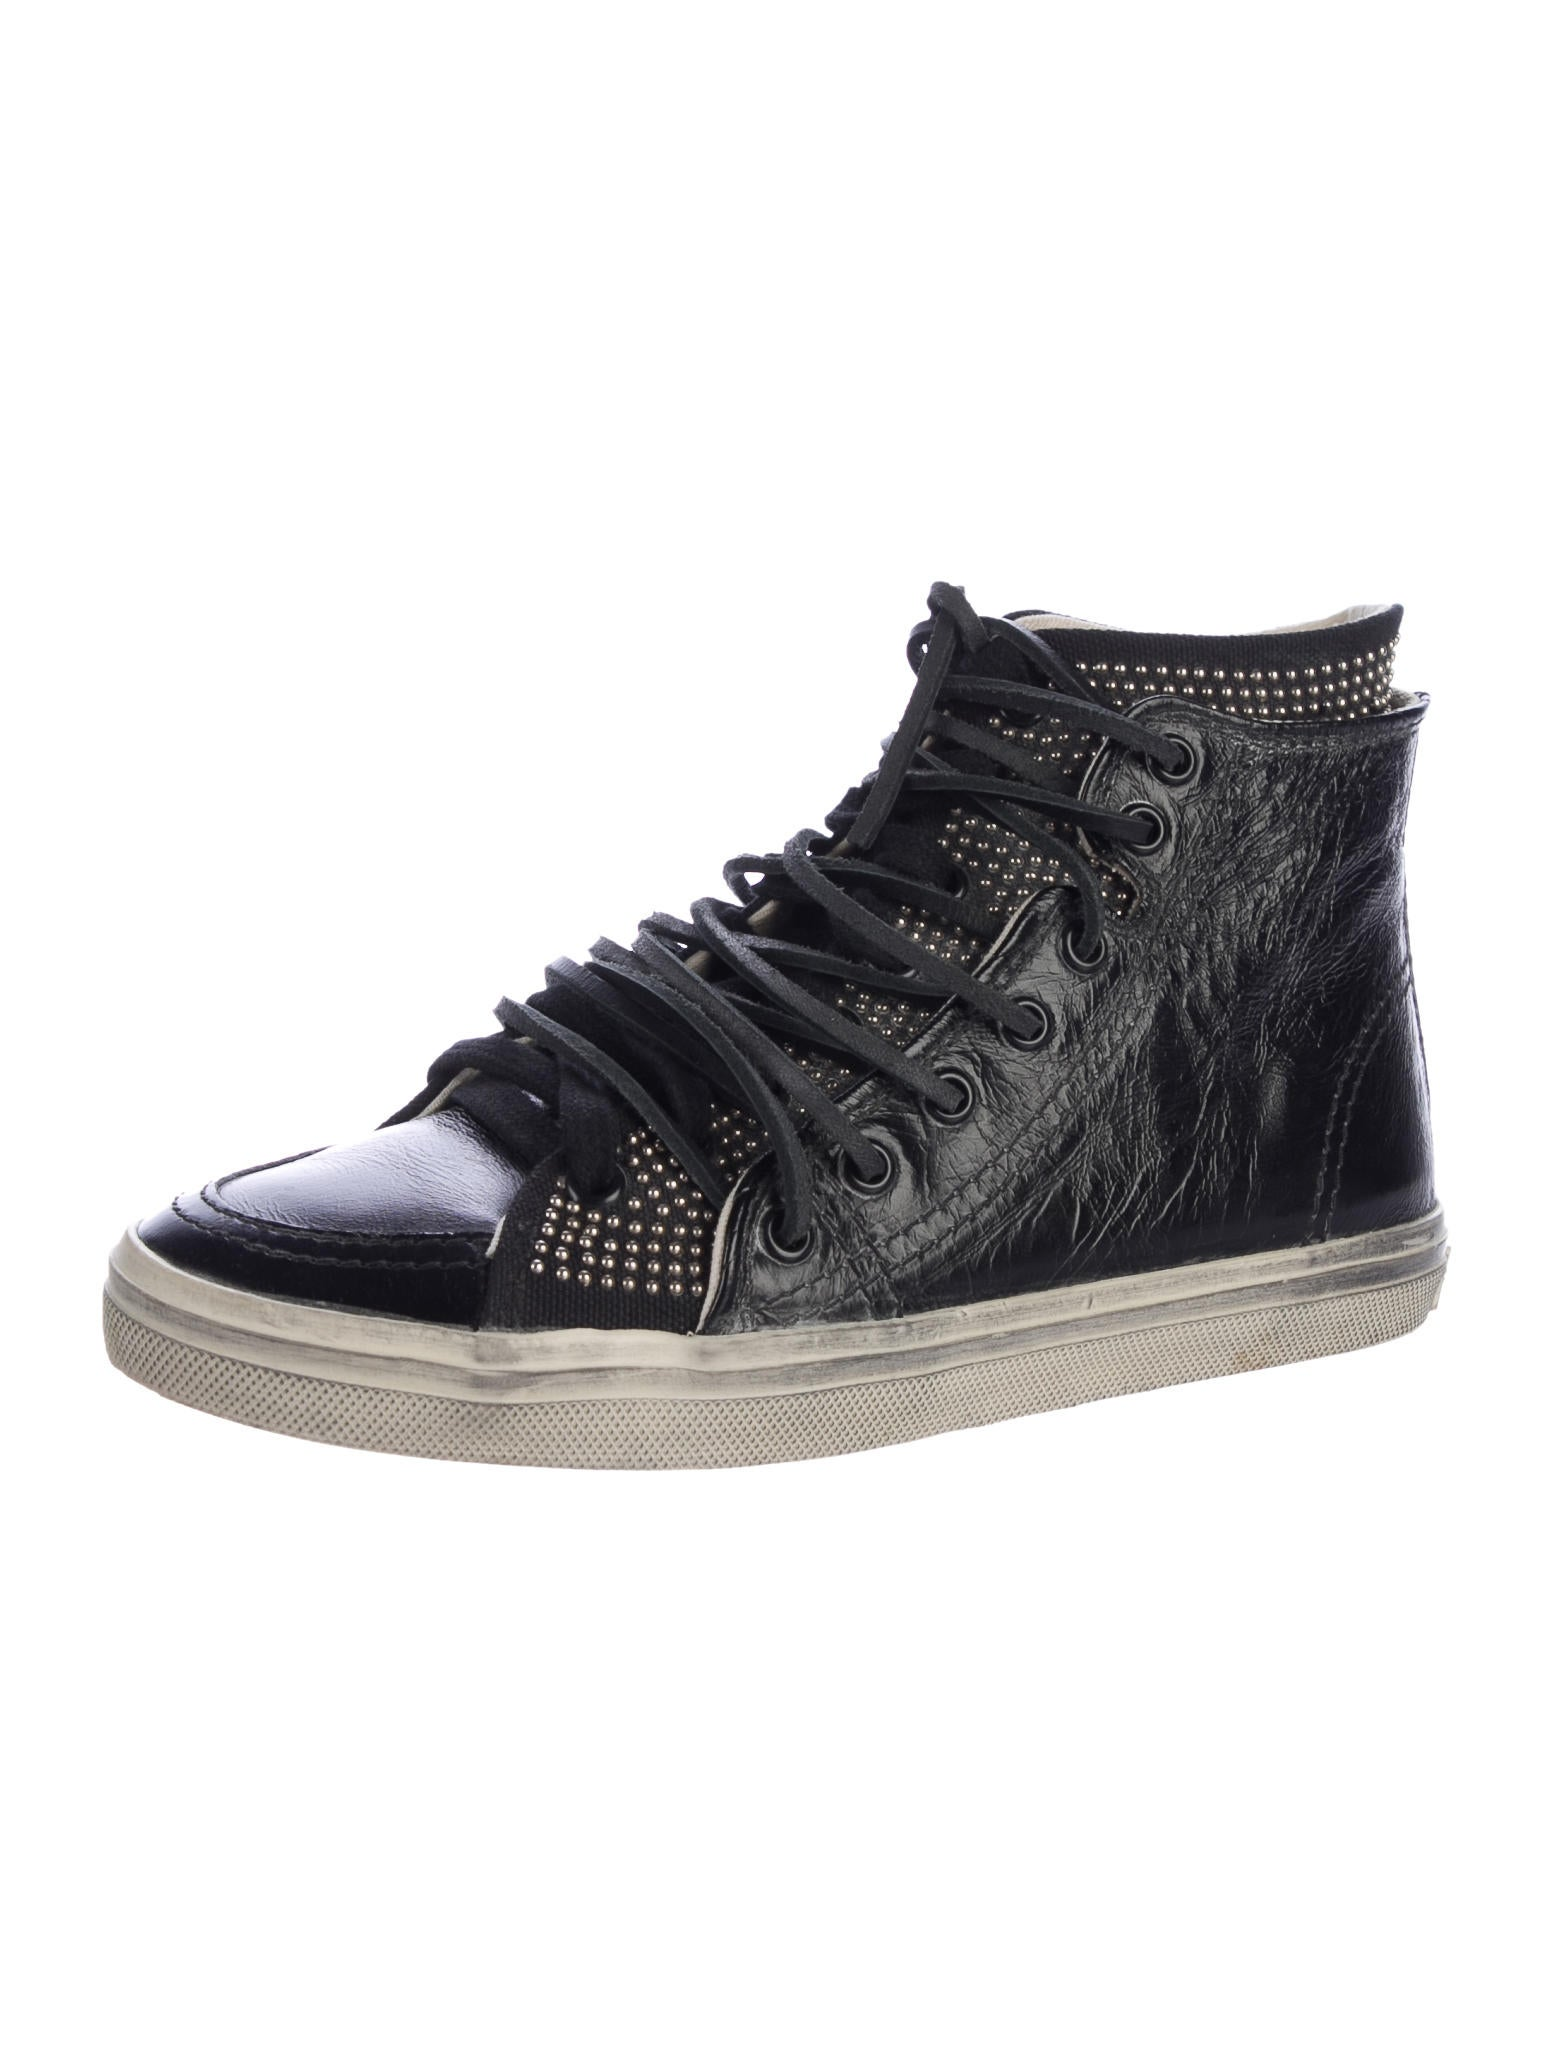 saint laurent studded high top sneakers shoes snt35850 the realreal. Black Bedroom Furniture Sets. Home Design Ideas